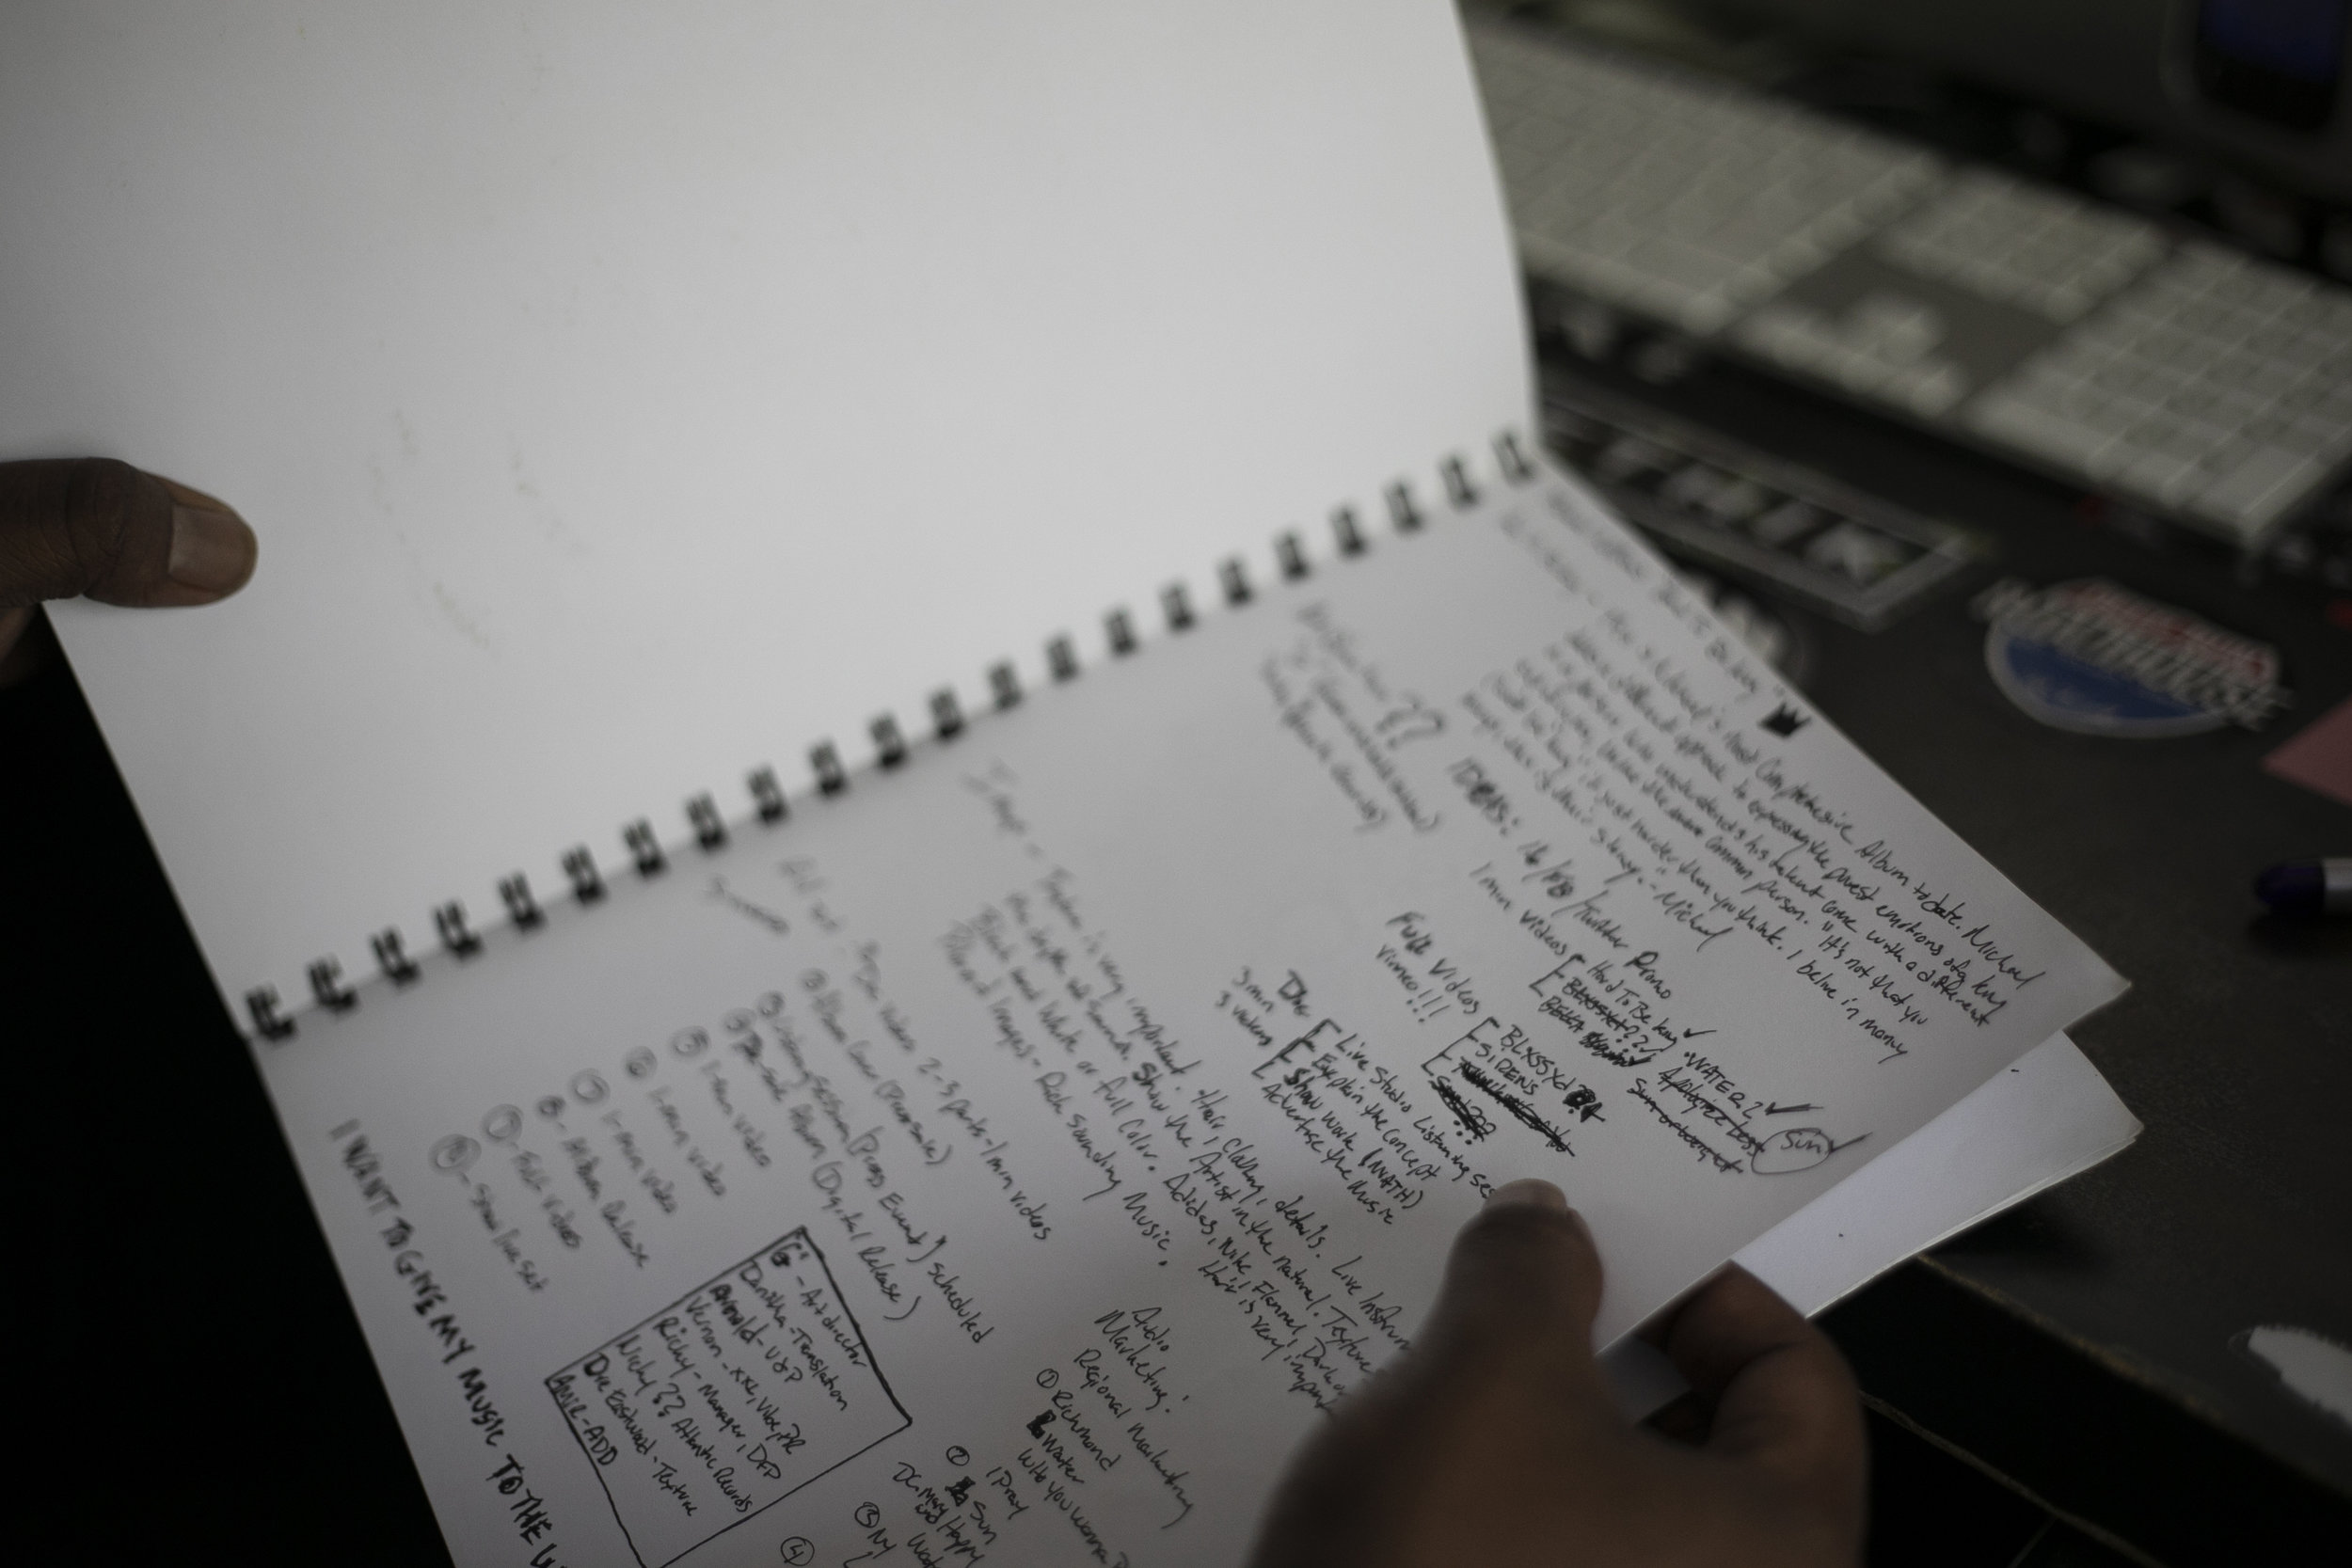 "Mike thumbs through an old notebook on April 24, 2019 in Richmond, Virginia. He is the co-founder—alongside his brother Brandon ""Namebrand"" Bass—of Purple Republic Music Group. A record label the two started after Mike's first music deal fell through. This page is the rollout plan for his most recent project ""Hard to be King."""